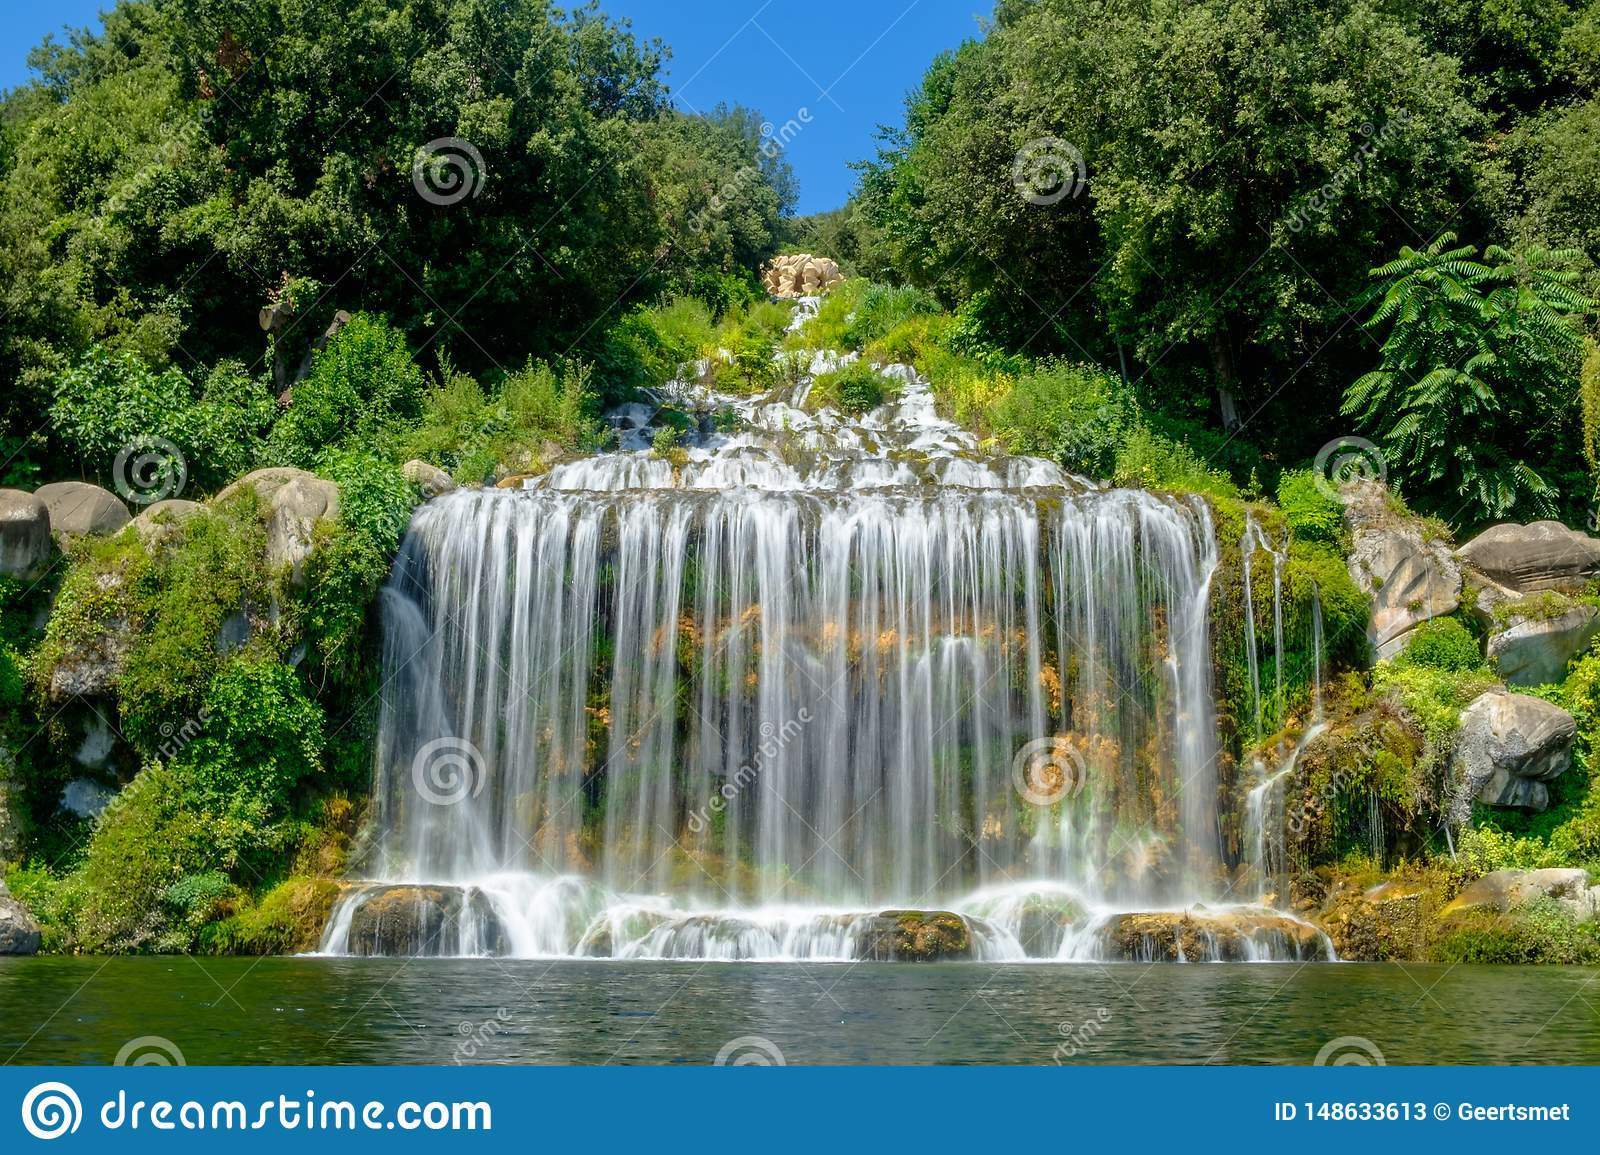 Great waterfall of the gardens of the Royal Palace of Caserta